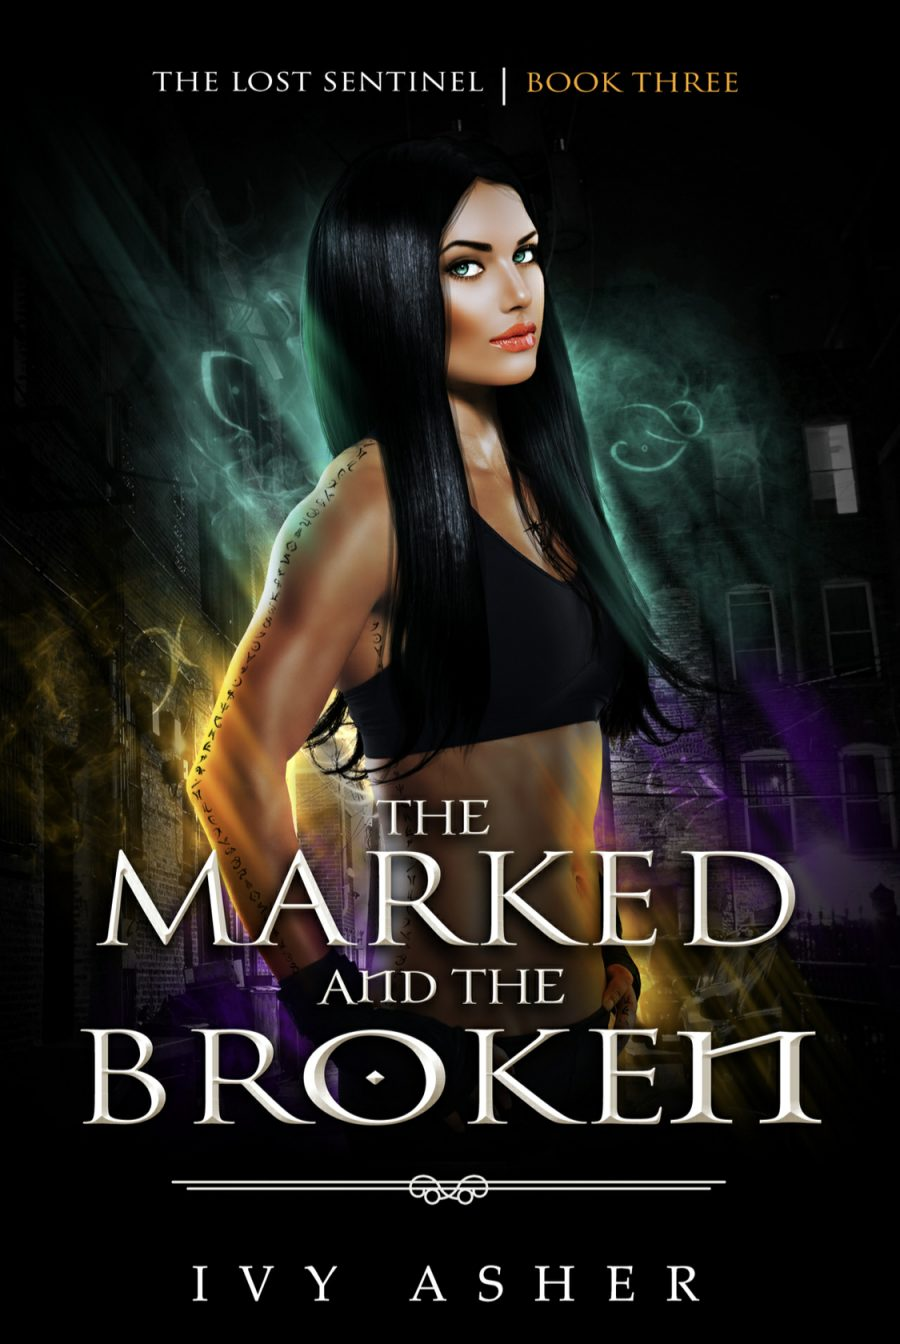 The Marked and The Broken (The Last Sentinel - Book 3) by Ivy Asher - A Book Review #BookReview #5Star #PNR #Series #RH #ReverseHarem #WhyChoose #KindleUnlimited